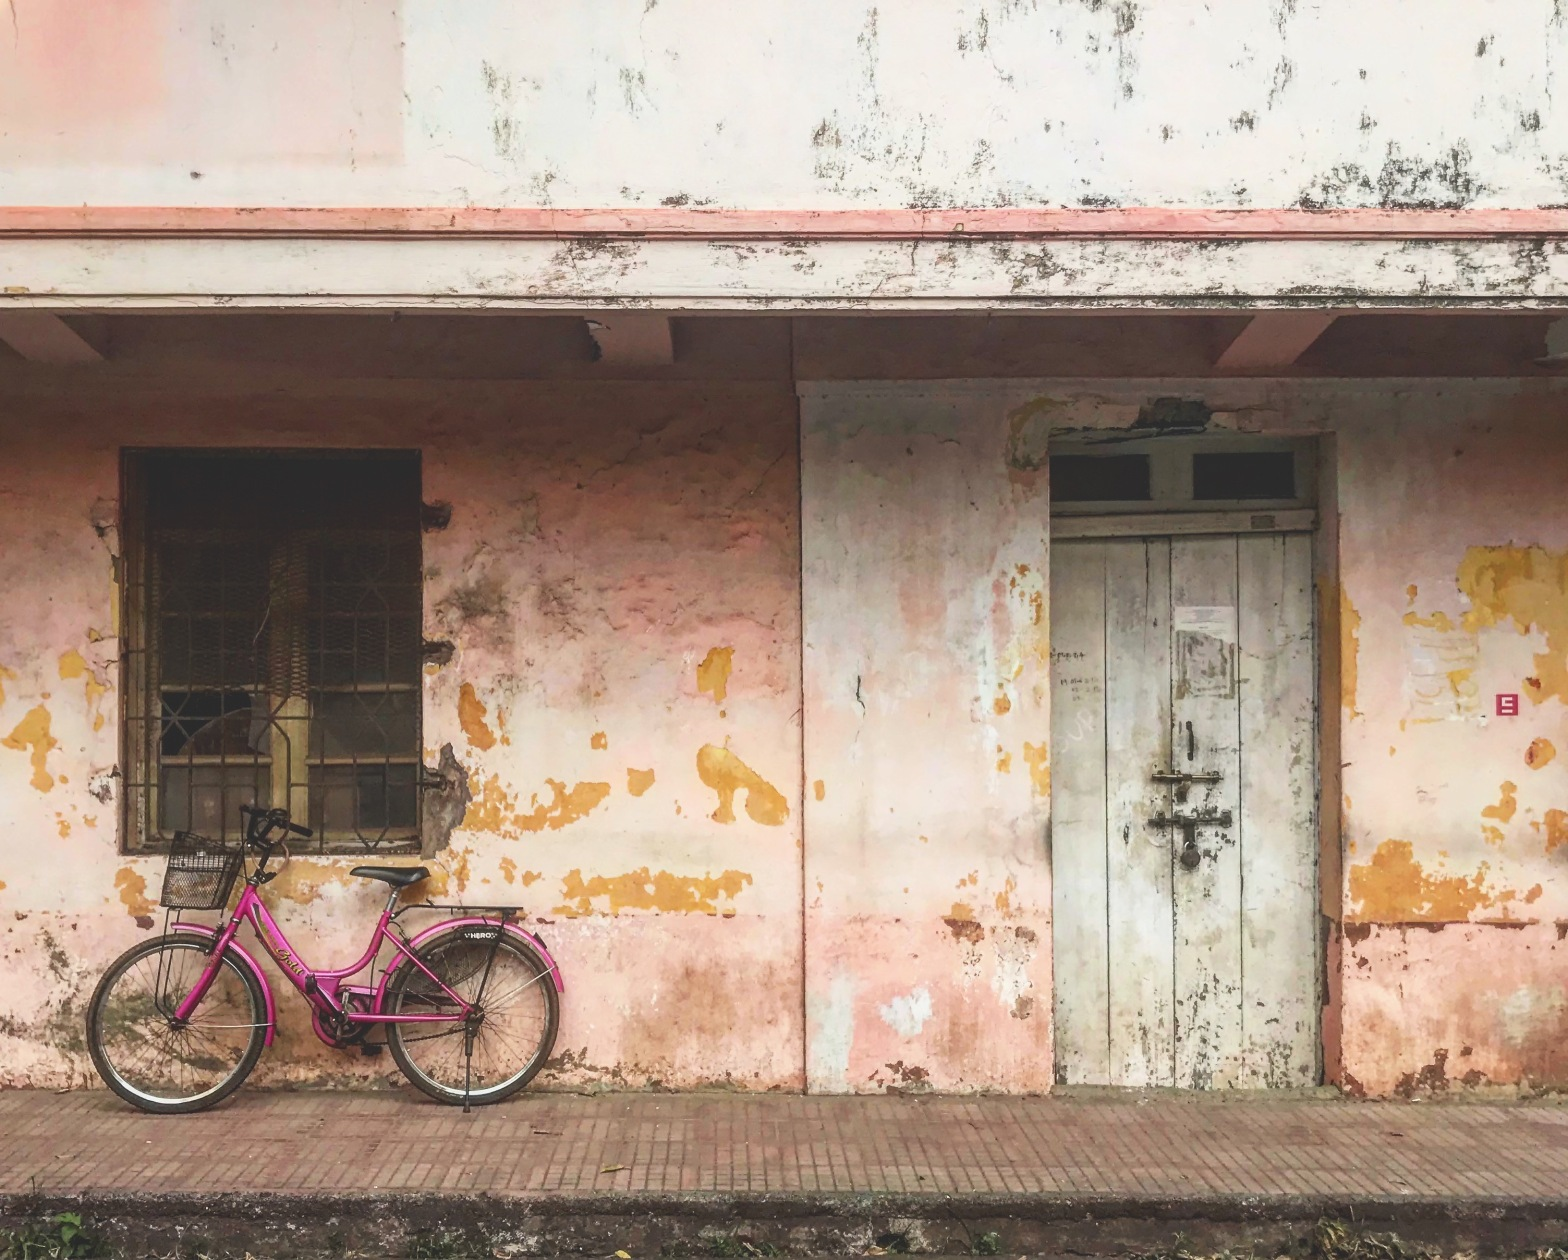 Bicycle outside worn weathered house